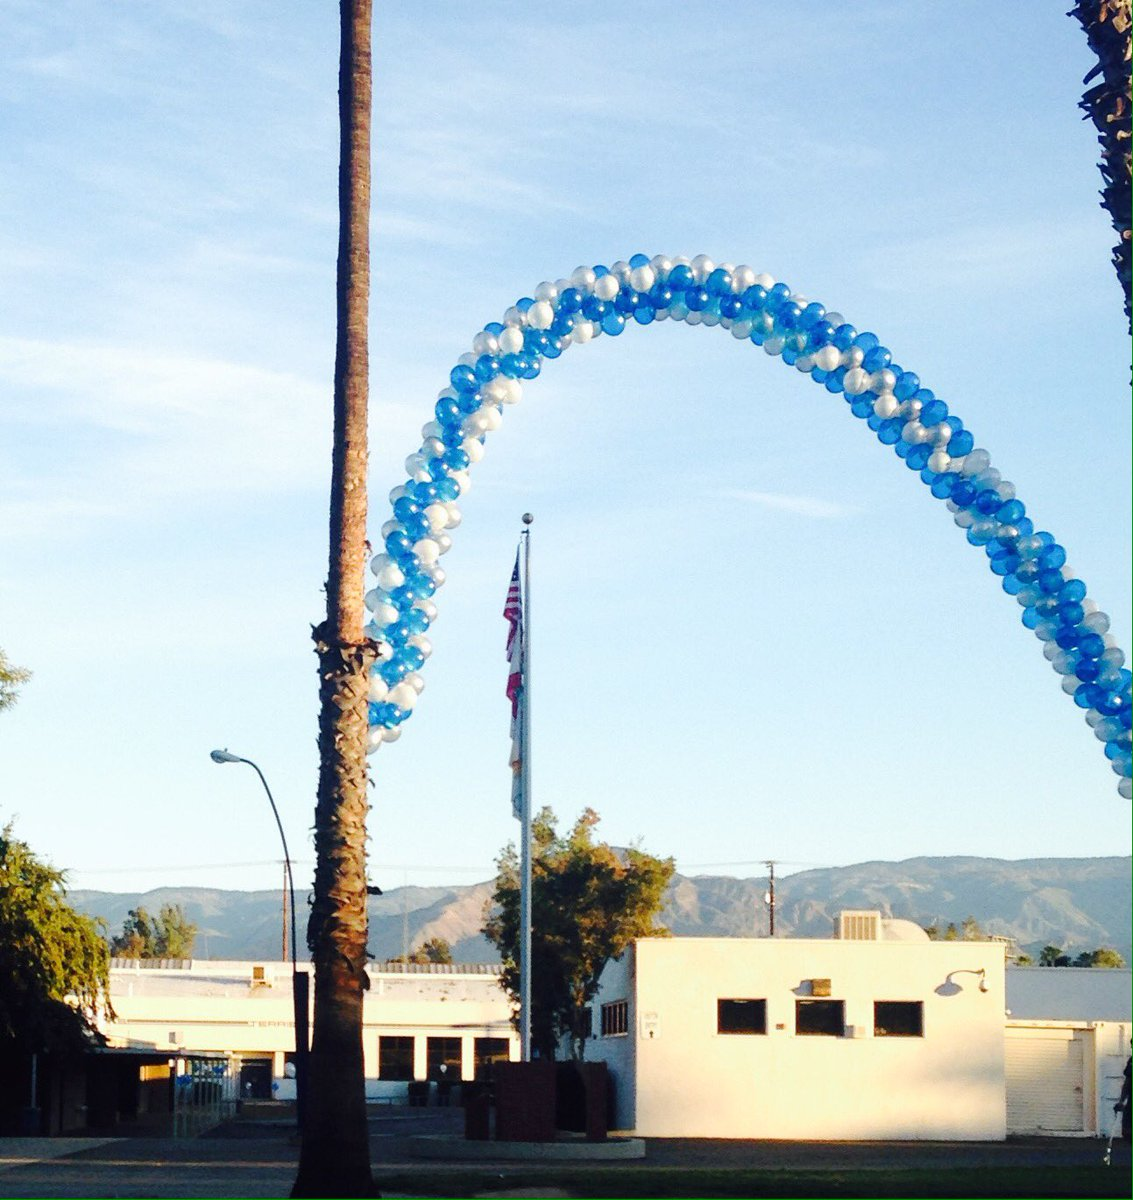 Happy Homecoming to the  Terriers!  #125Strong  #TerrierTown #GoDawgs #TheLongBlueLine #WeLoveRHS #RedlandsHighScool